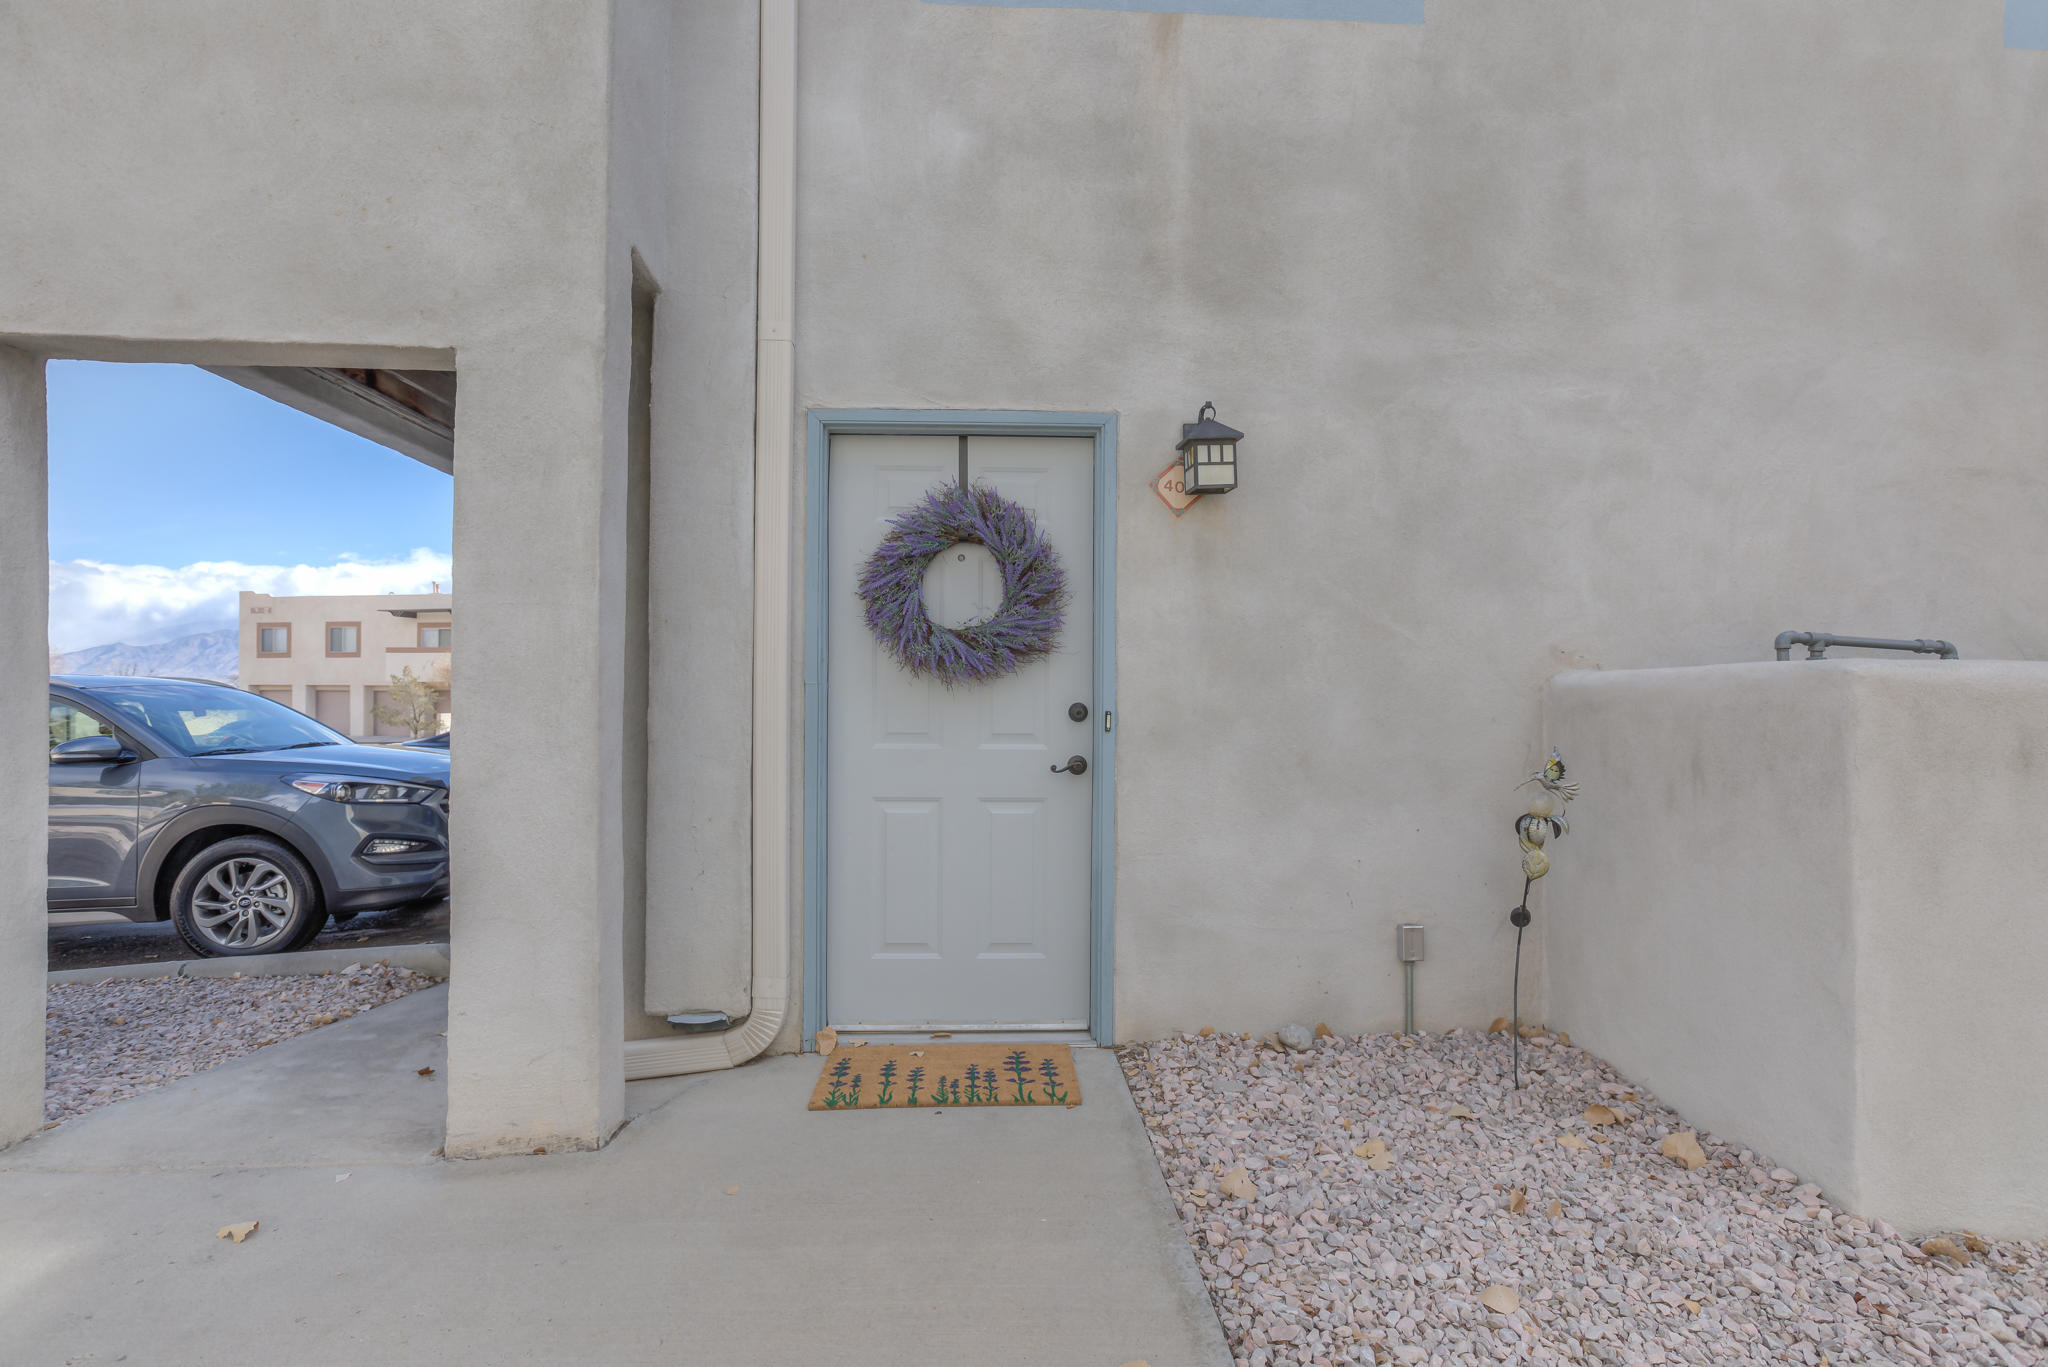 Northwest Albuquerque and Northwest Heights Homes for Sale -  Mountain View,  4801 NW Irving Boulevard